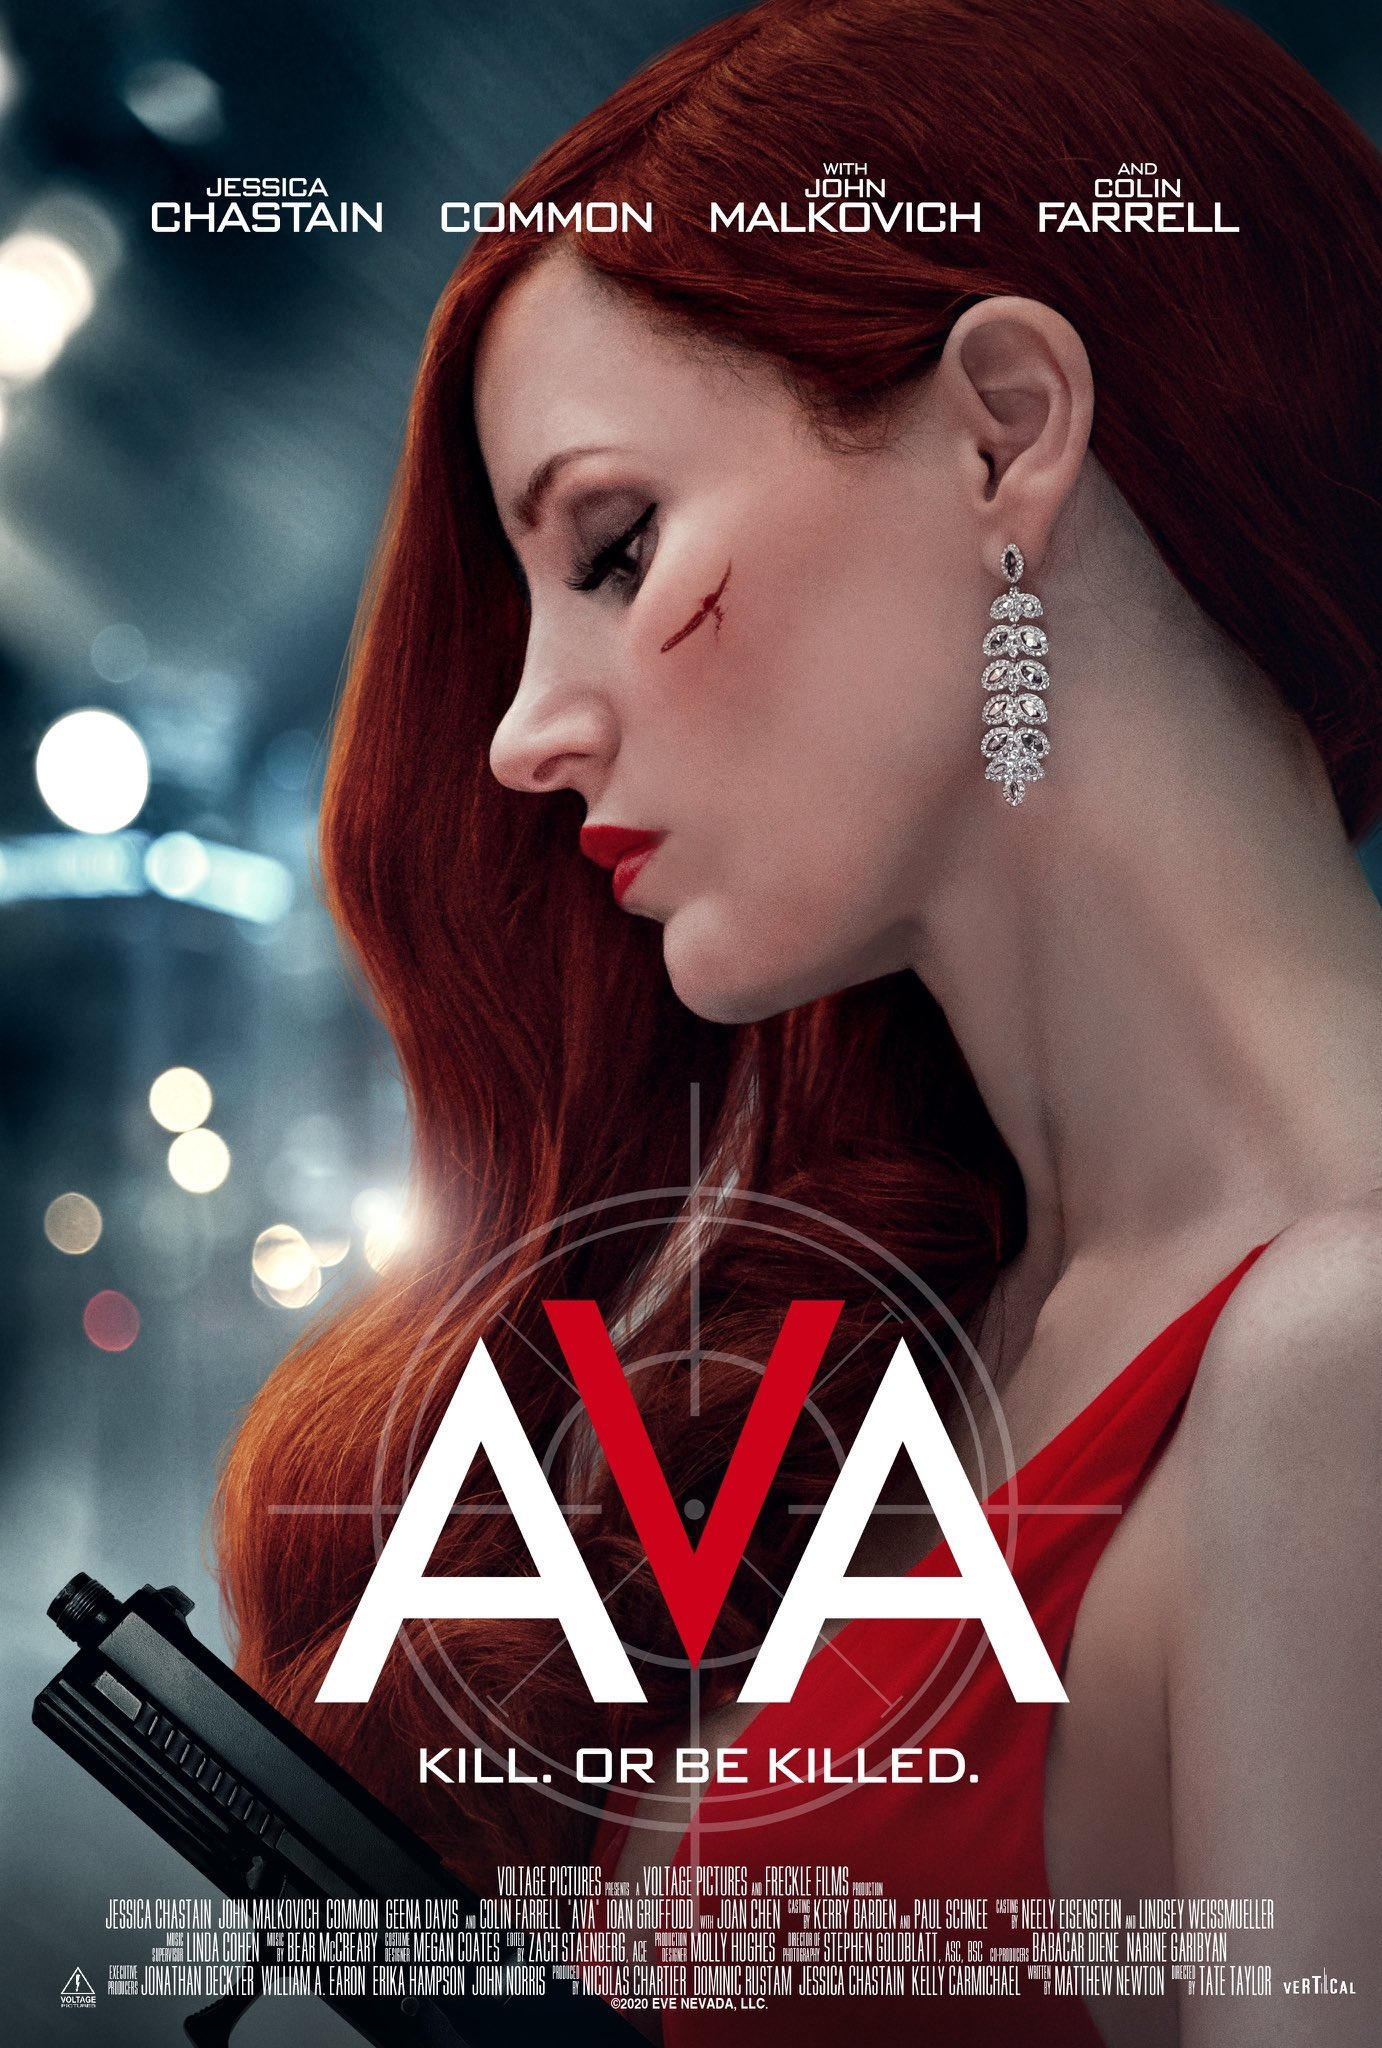 Ava hd on soap2day